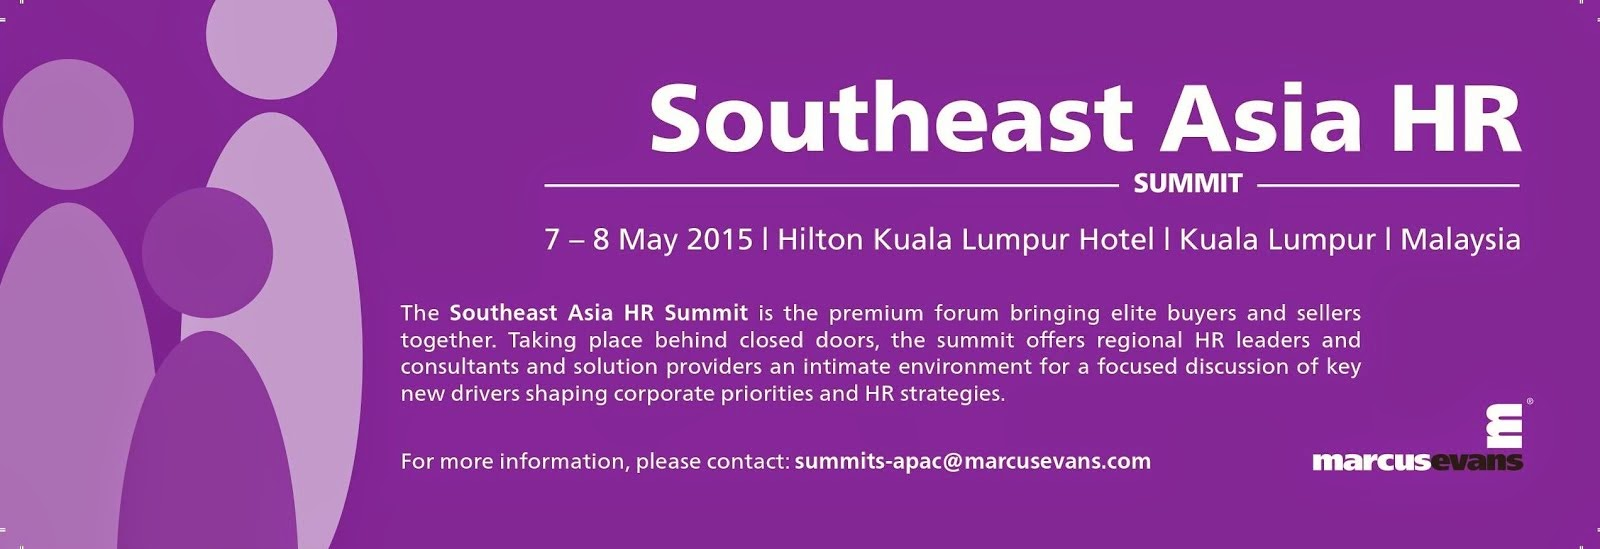 Southeast Asia HR Summit 2015